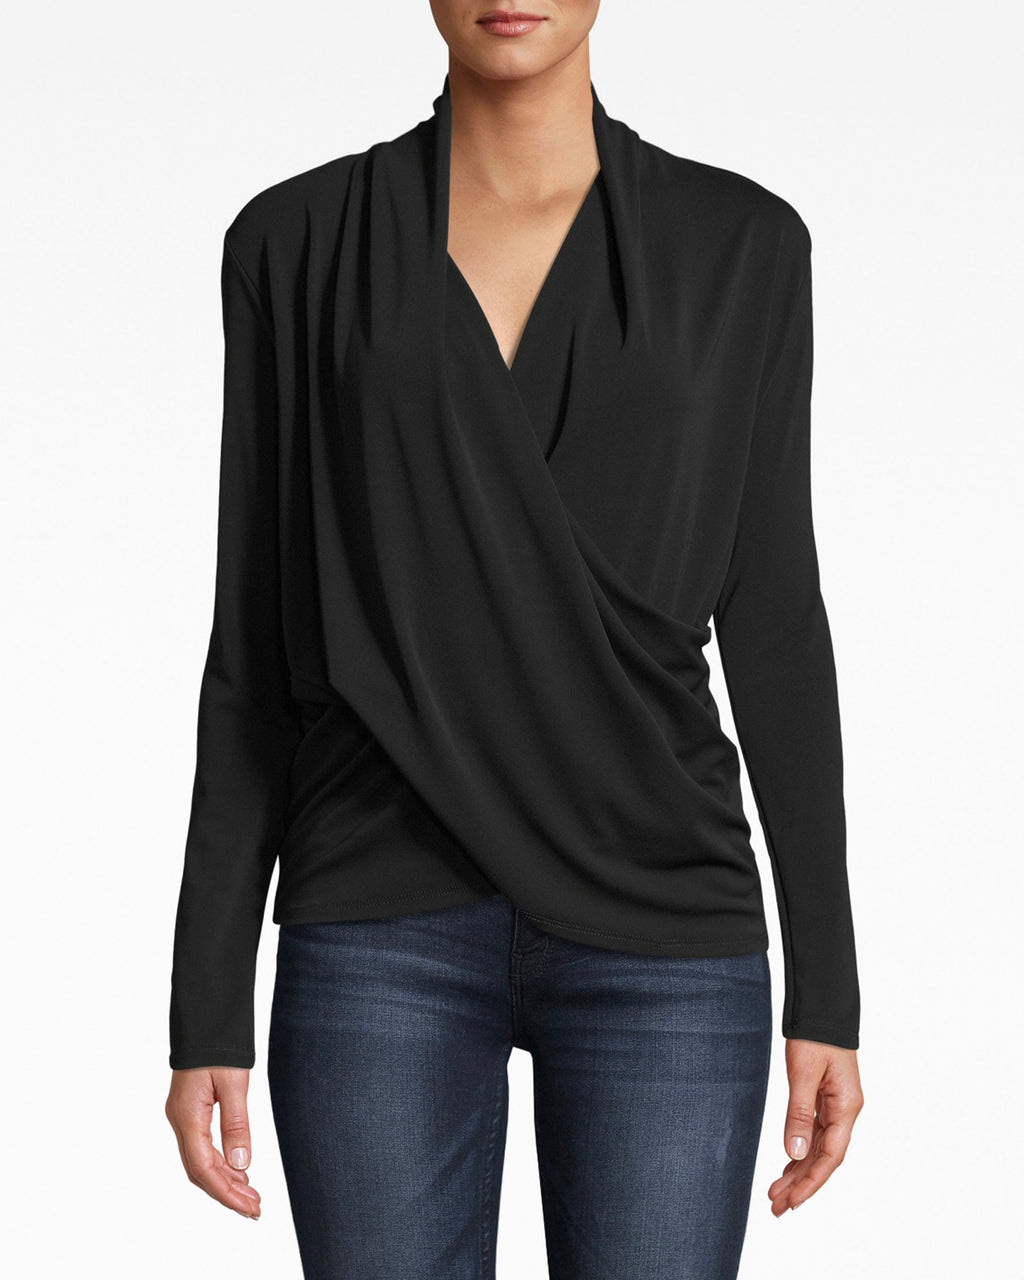 BC10299 - STRETCHY MATTE JERSEY LONG SLEEVE DRAPEY TOP - tops - shirts - Drapey chic. The long sleeves on this jersey top are a sreamlined complement to the v neck and slight collar.